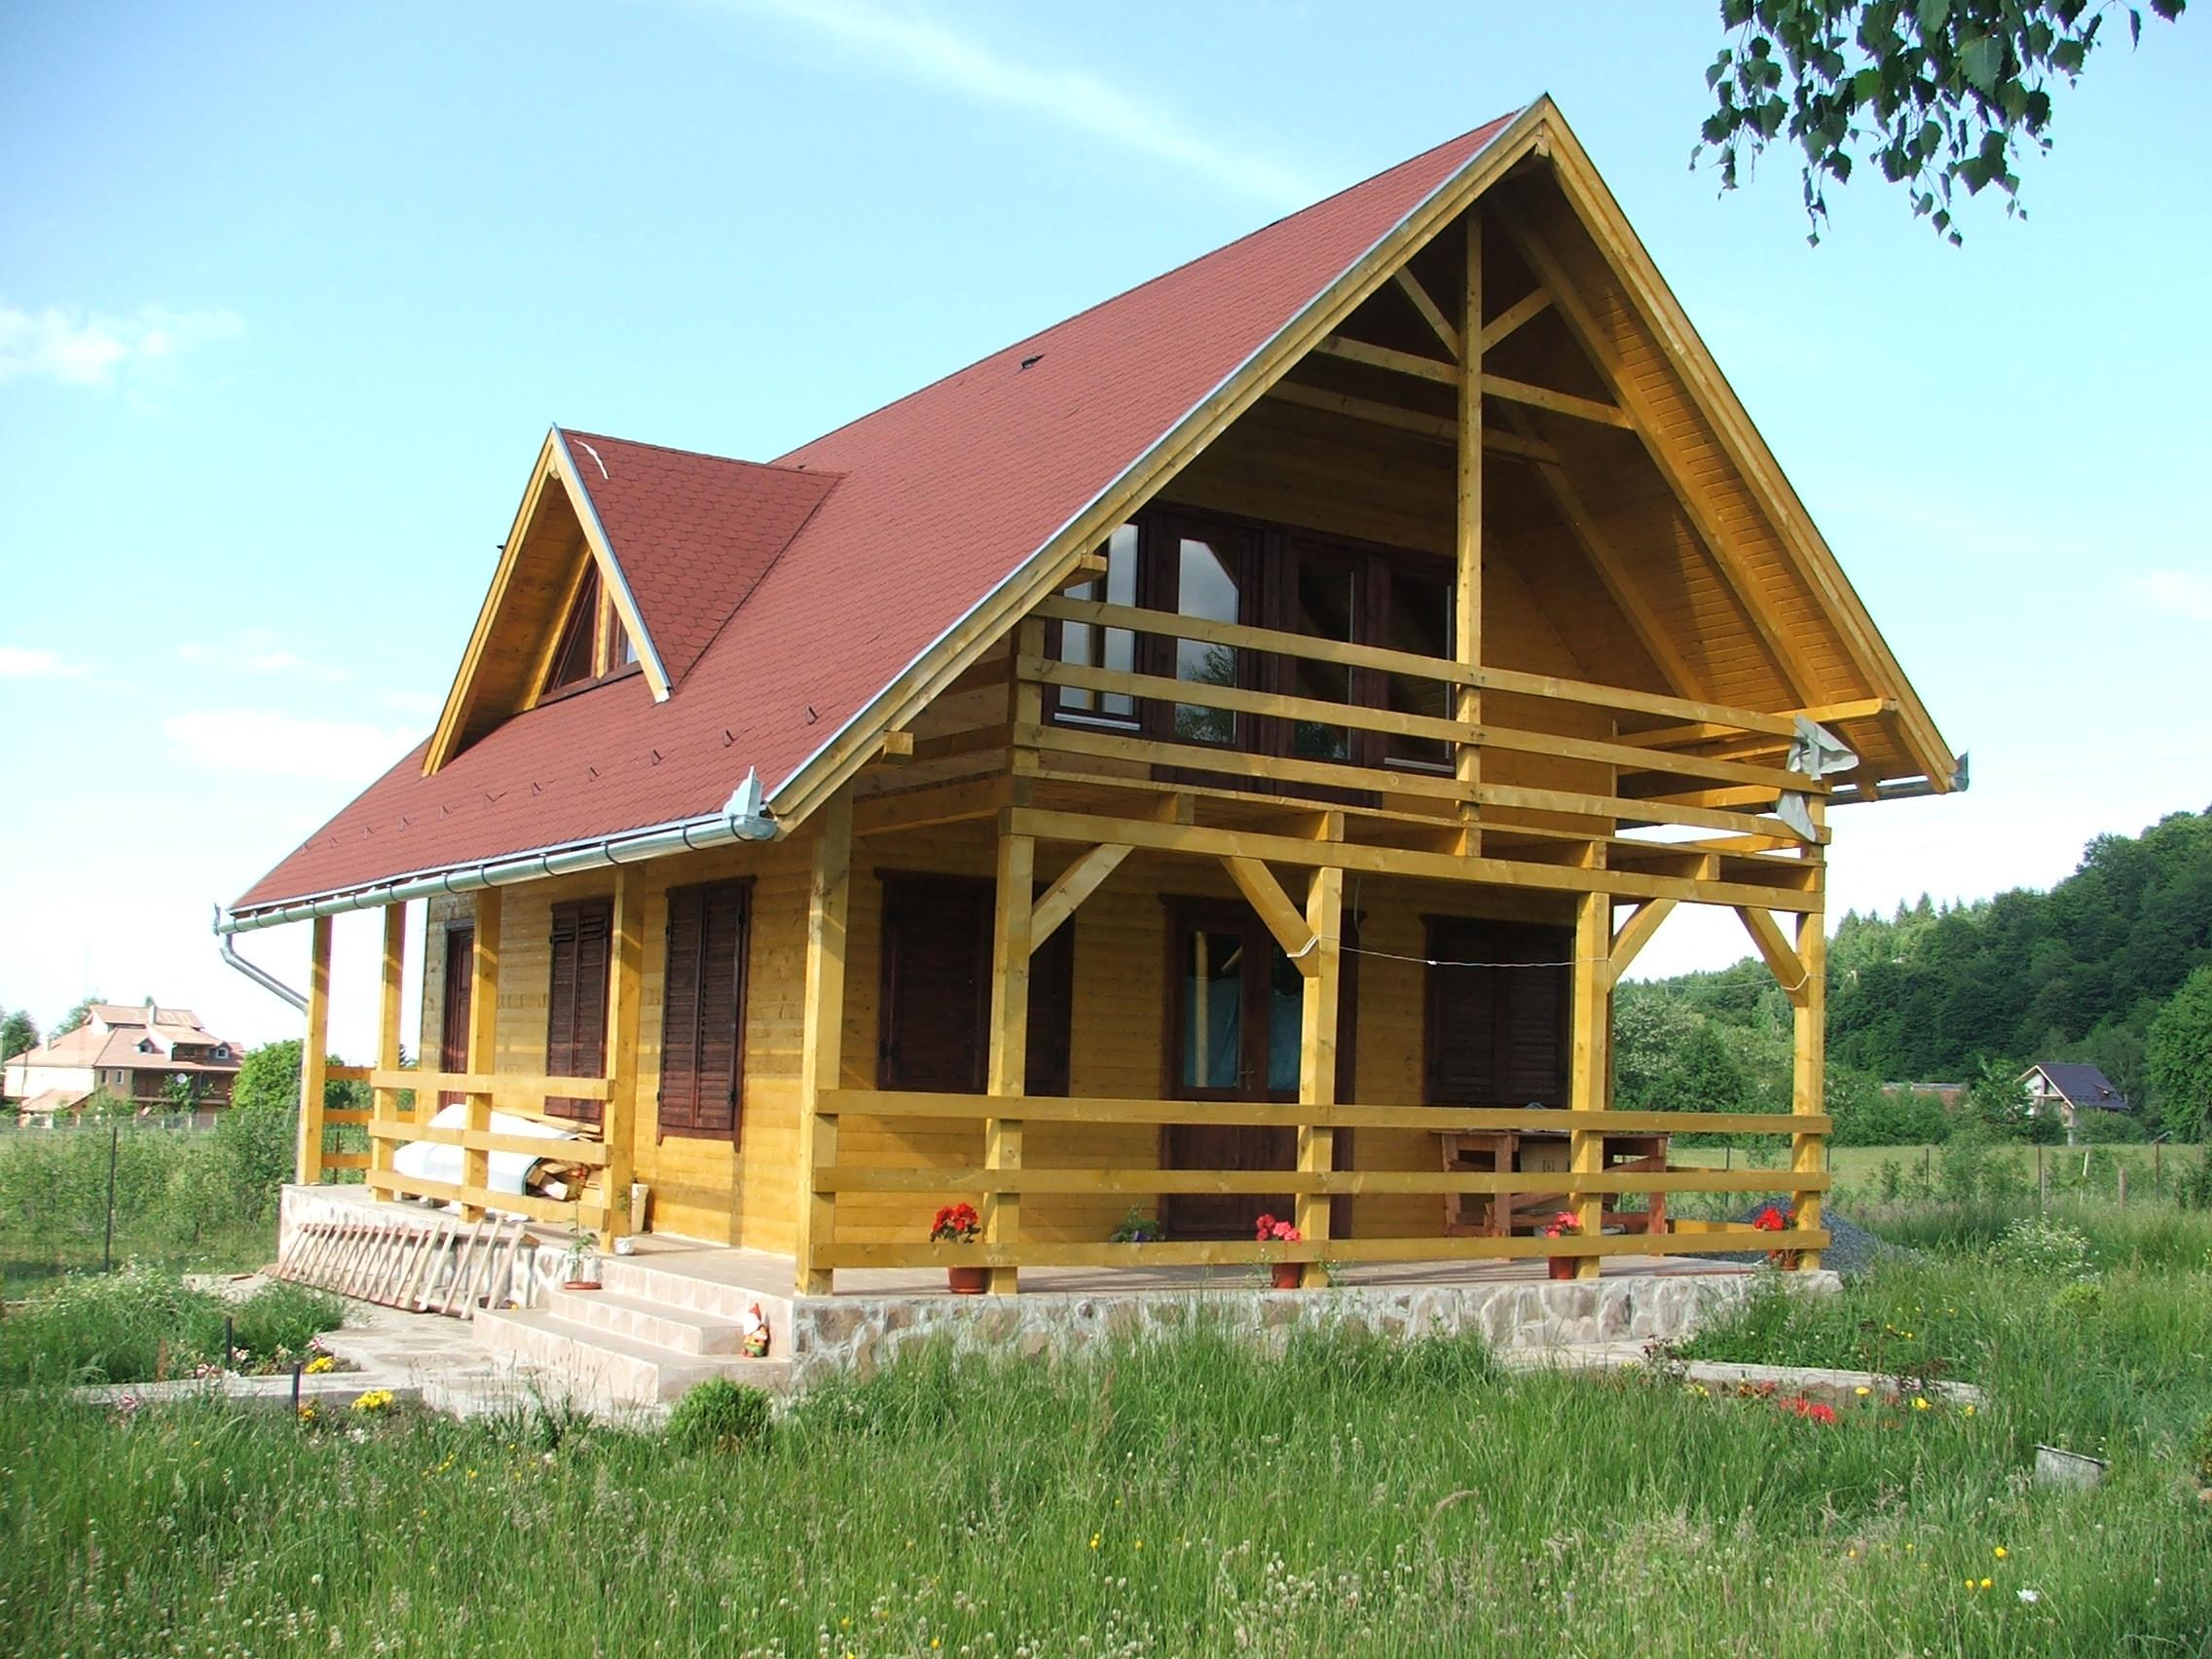 Timber frame house images frompo Timber house